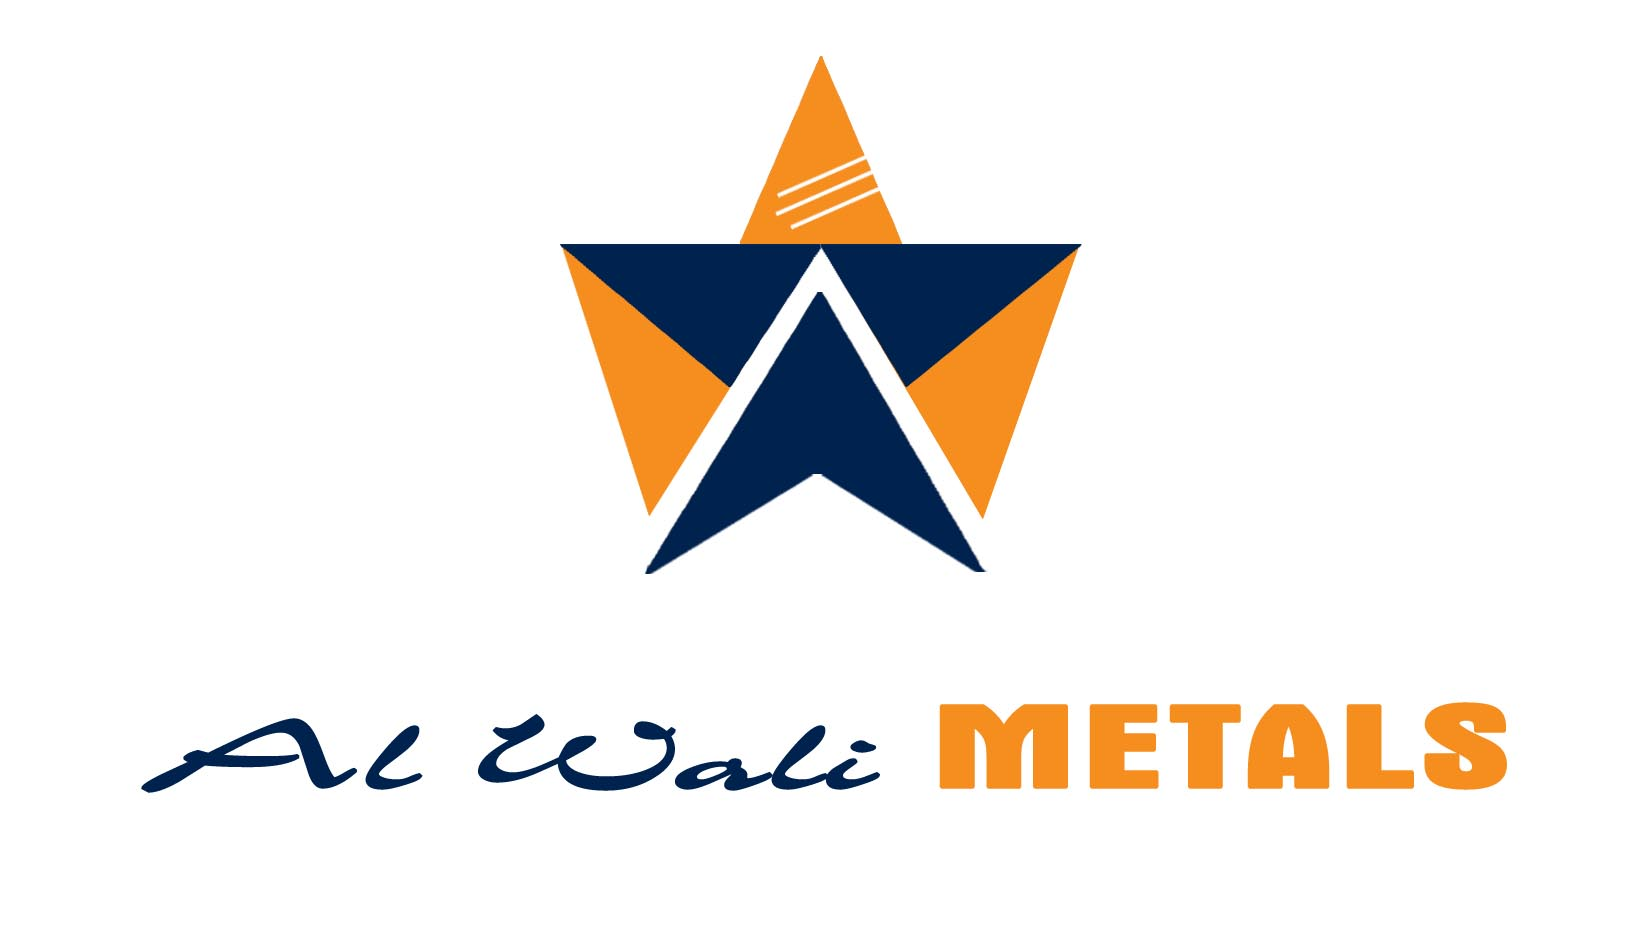 Logo Design by Cesar III Sotto - Entry No. 43 in the Logo Design Contest Inspiring Logo Design for Al Wali Metals.